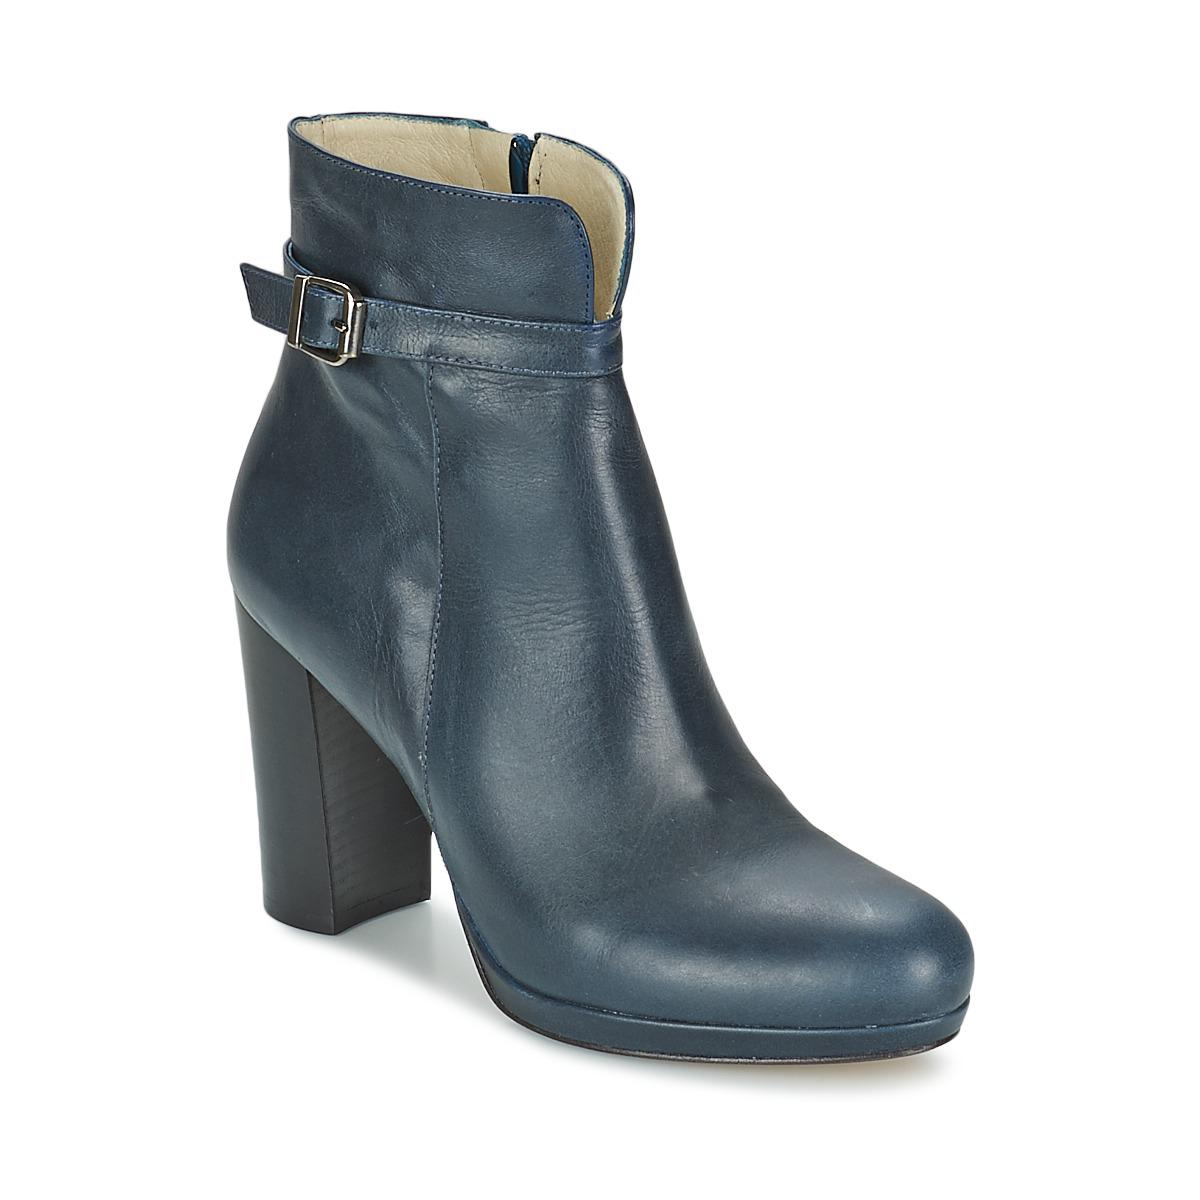 Latest Betty London Grazi Ankle Boots Black For Women Clearance